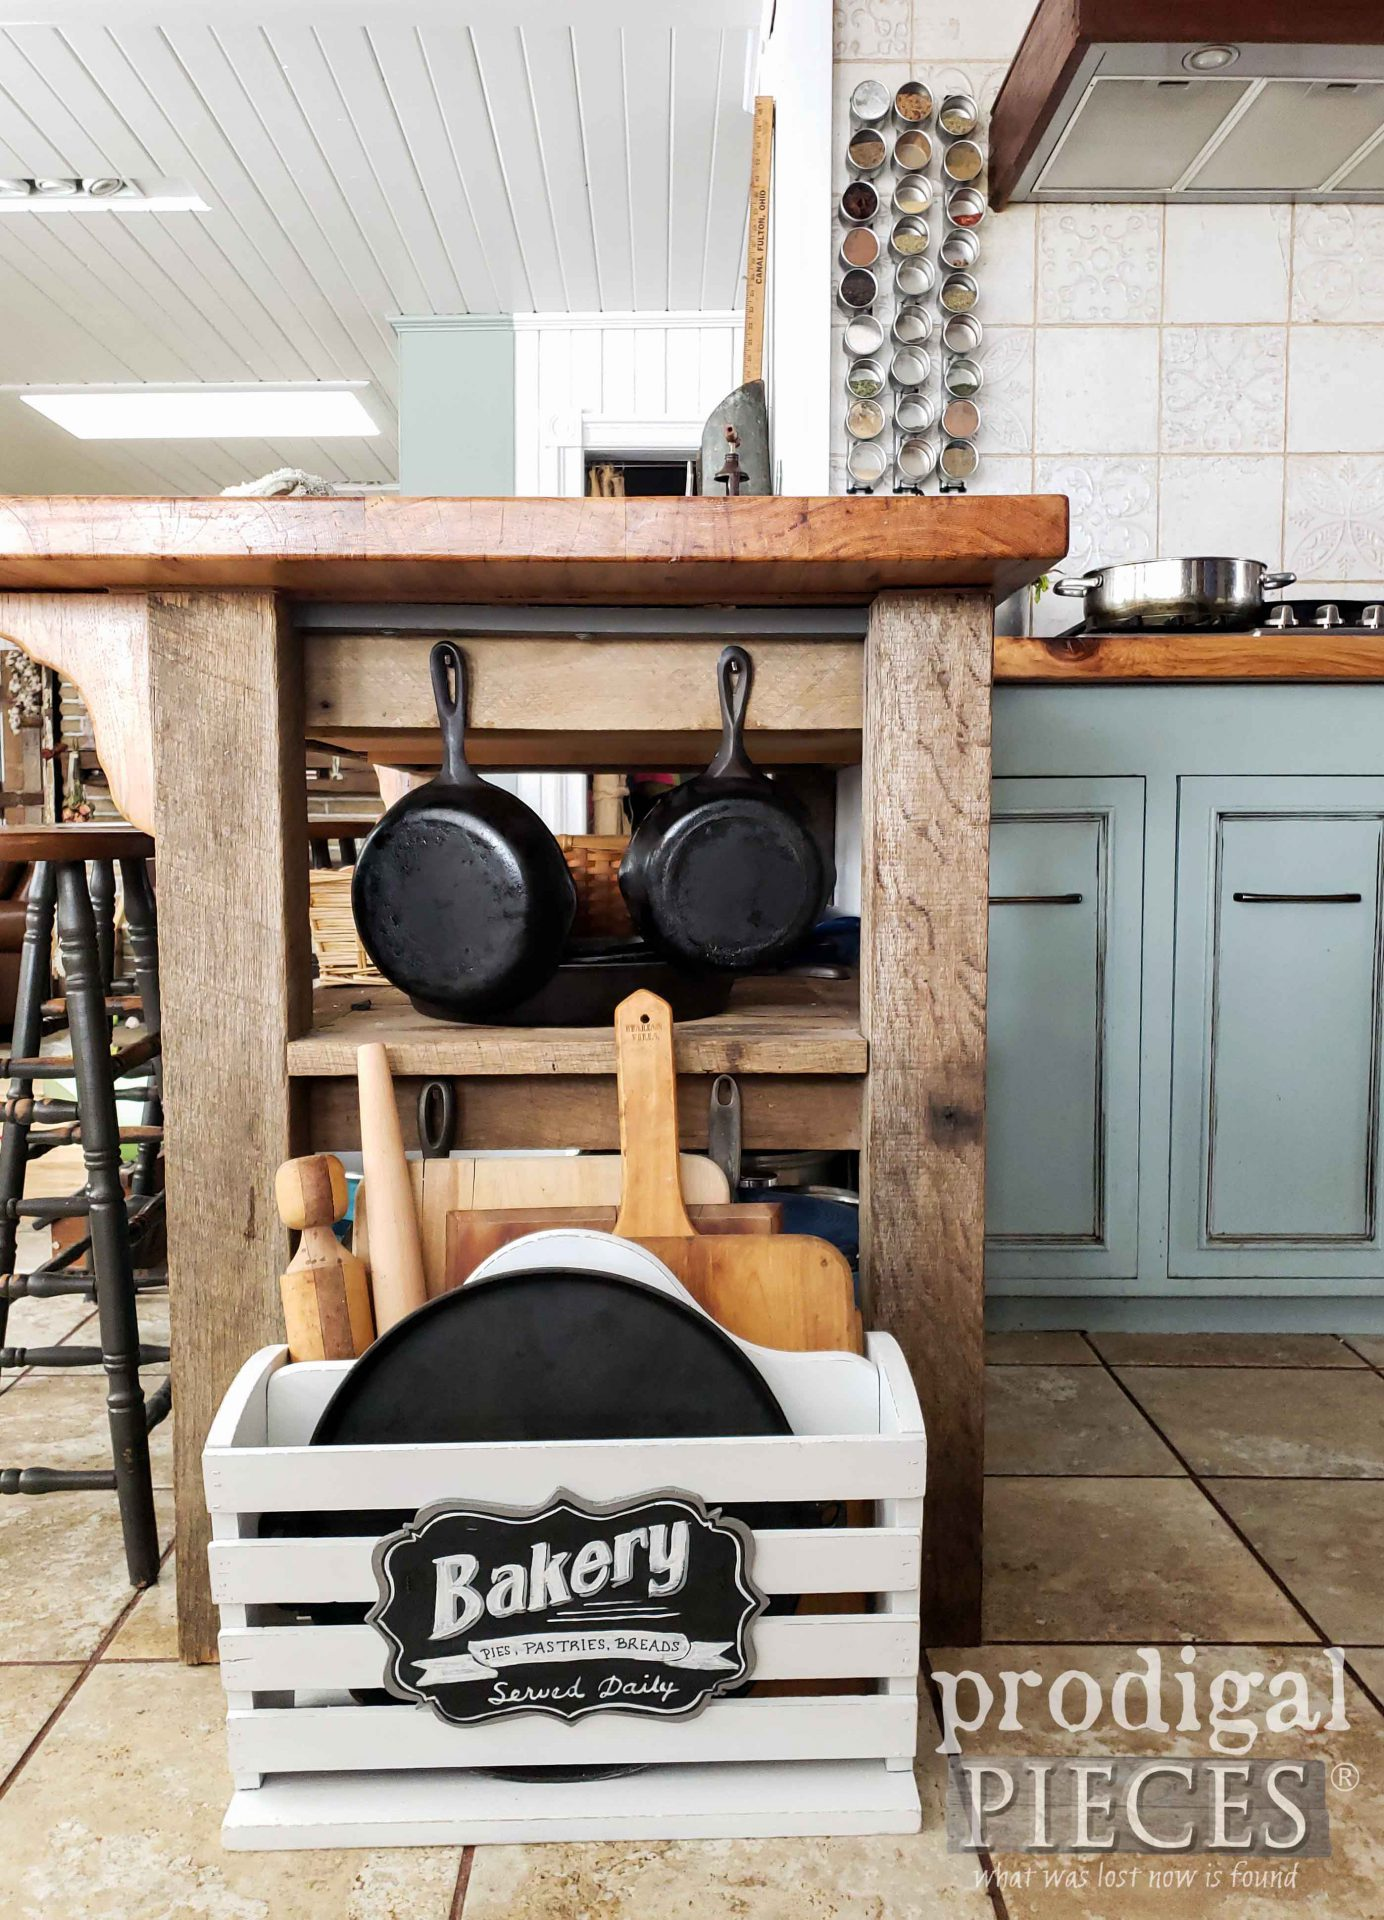 Farmhouse DIY Kitchen Storage from Repurposed Magazine Rack by Larissa of Prodigal Pieces | prodigalpieces.com #prodigalpieces #farmhouse #kitchen #storage #home #homedecor